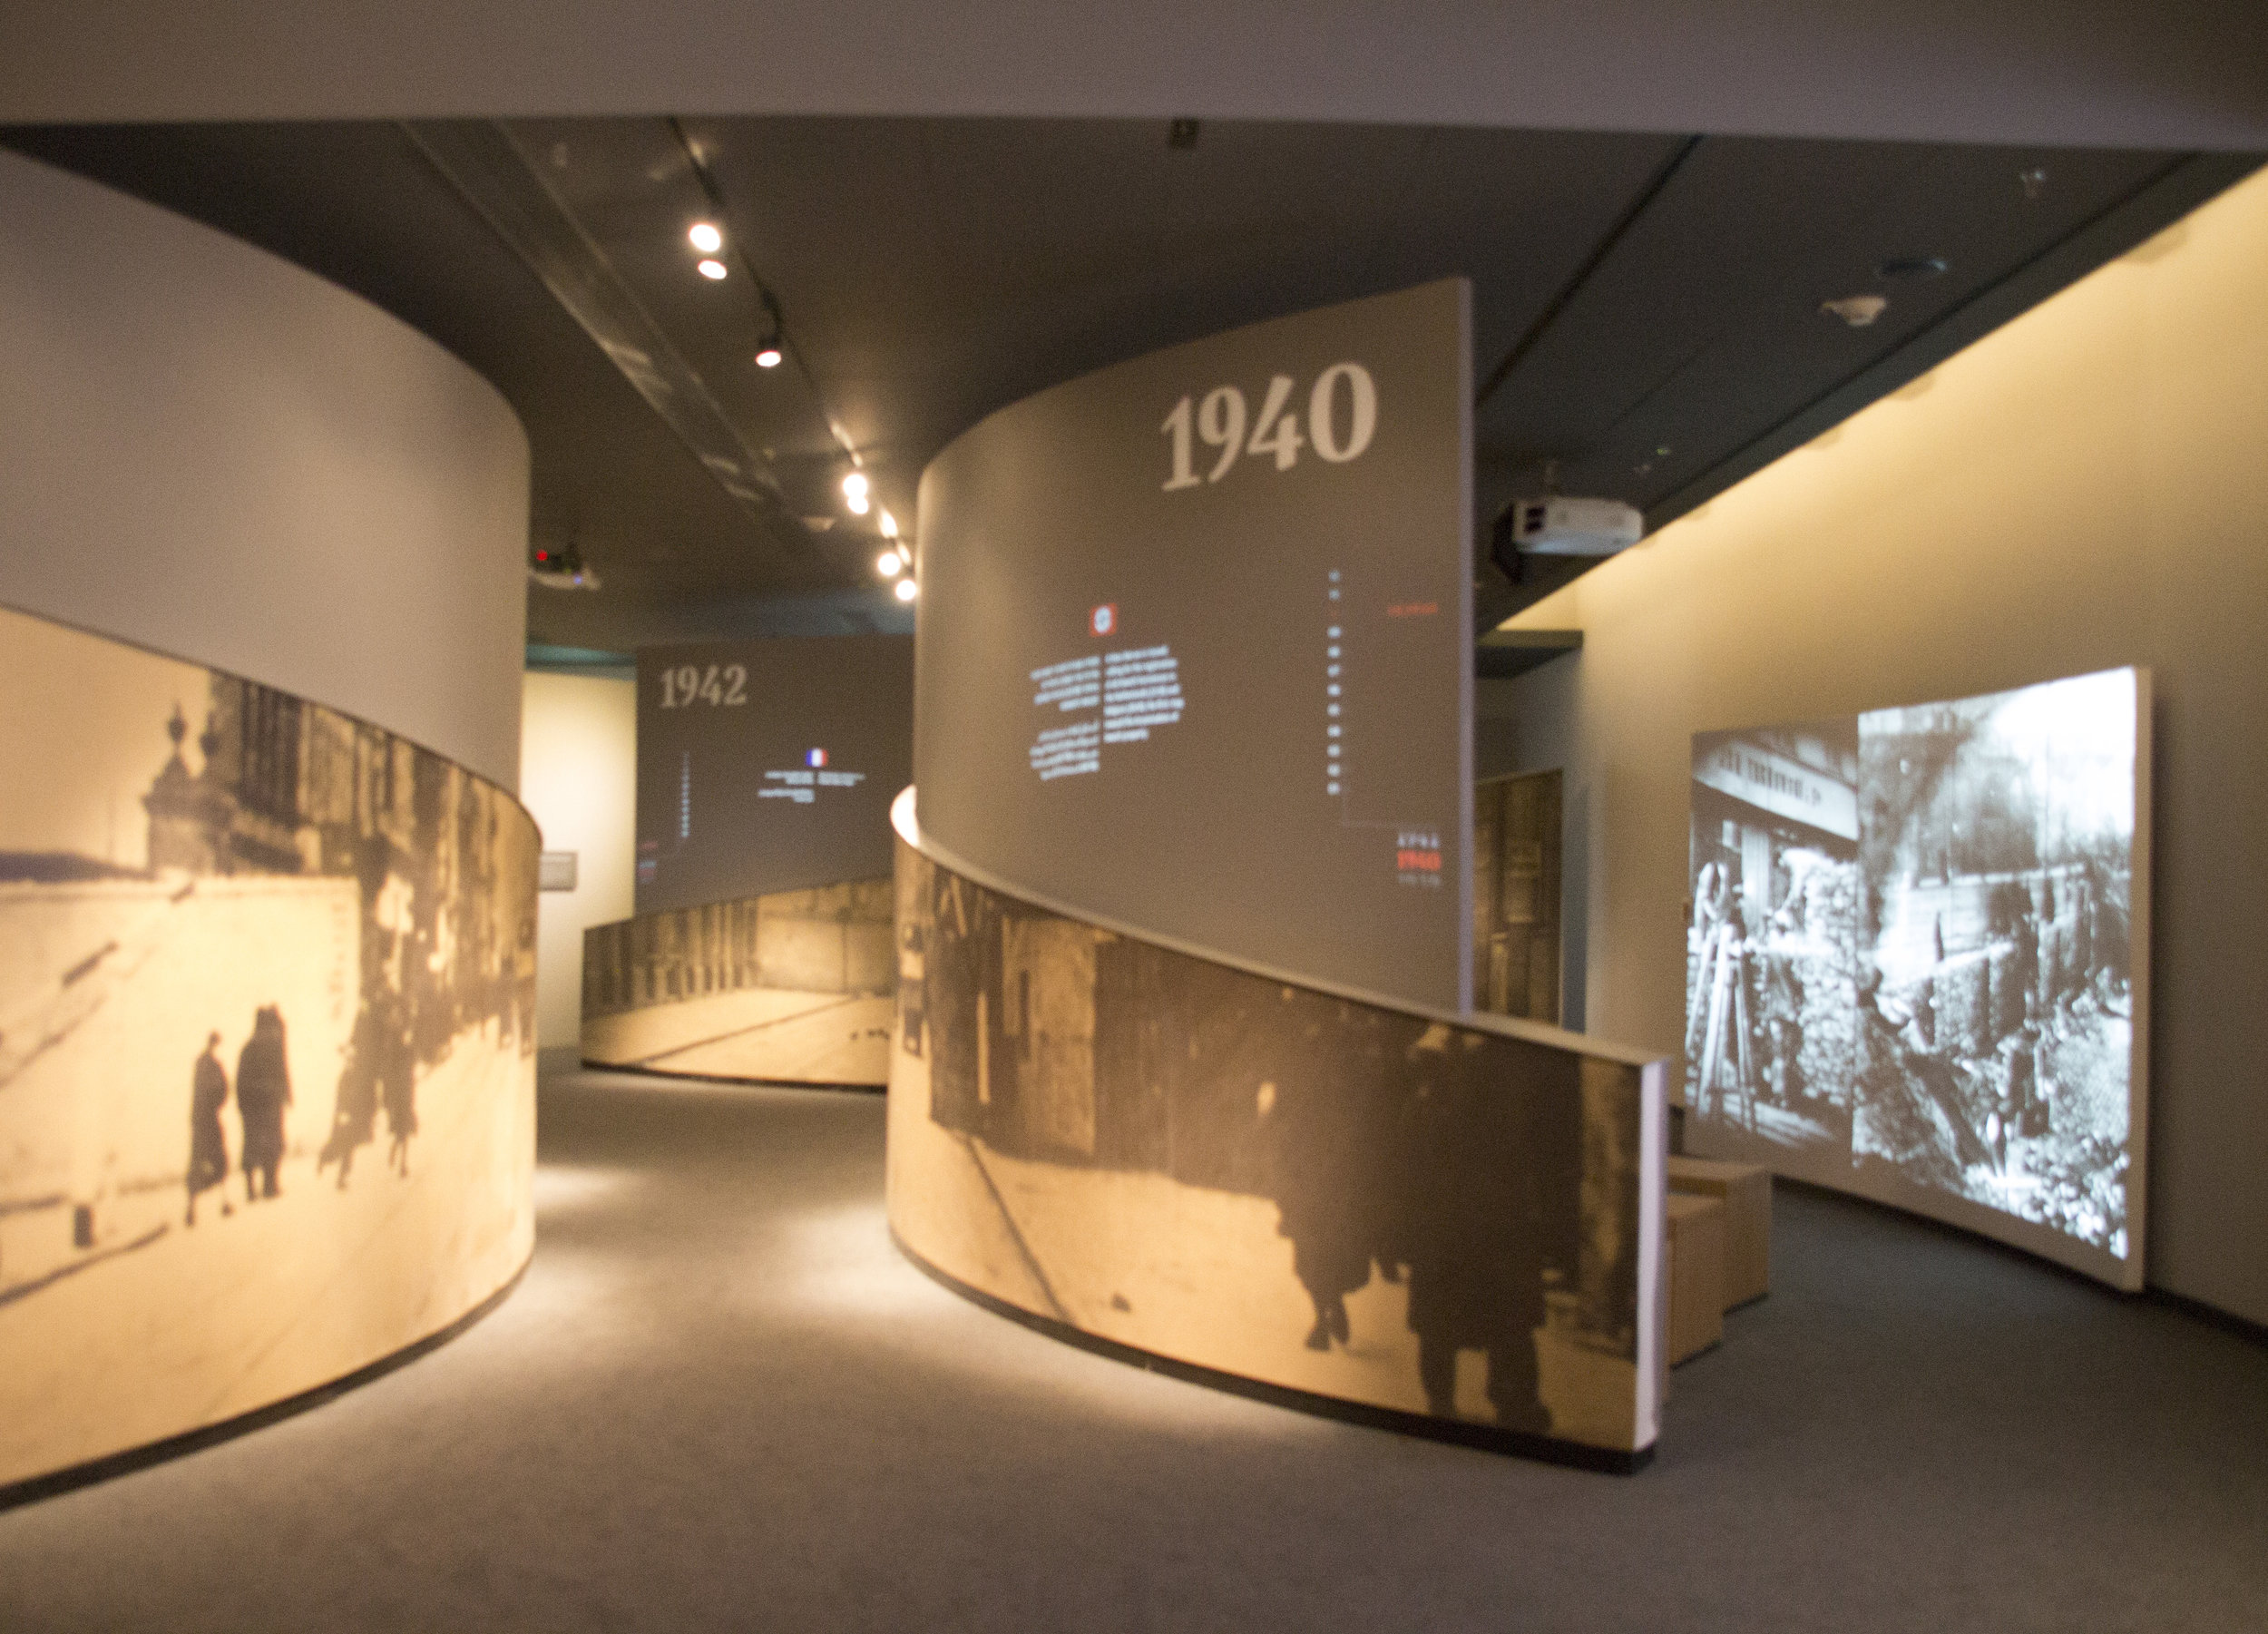 An audio-visual exhibit at the Ghetto Fighters' Museum. Photo credit: Wendy Goodman